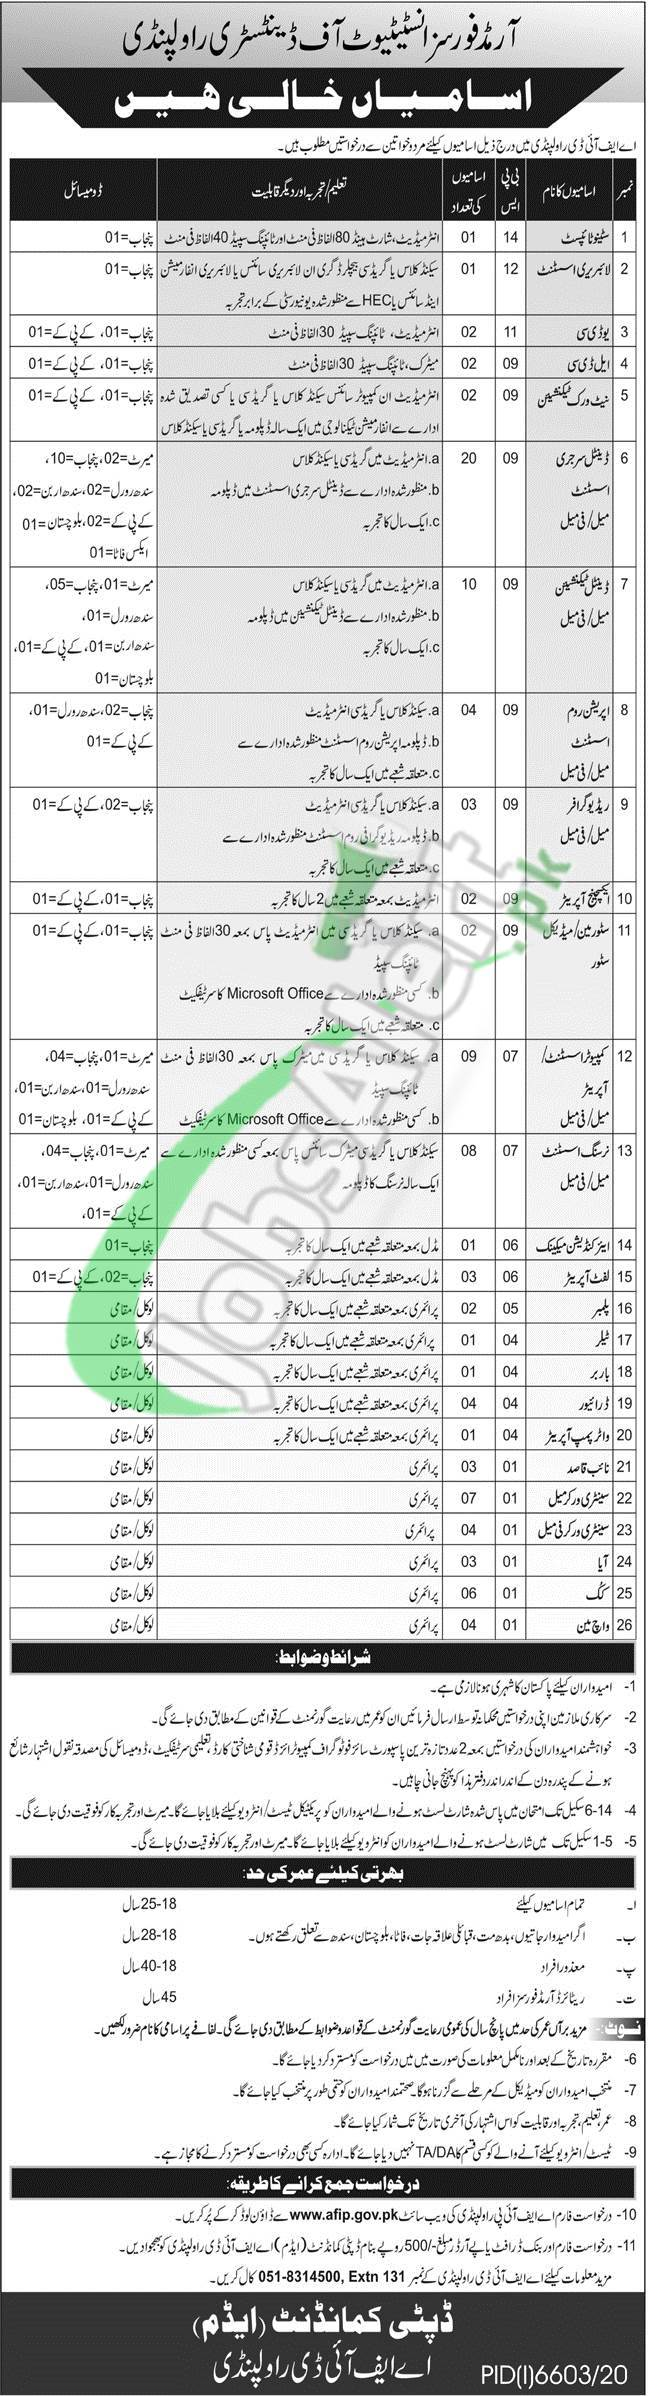 Armed Forces Institute of Dentistry Rawalpindi Jobs